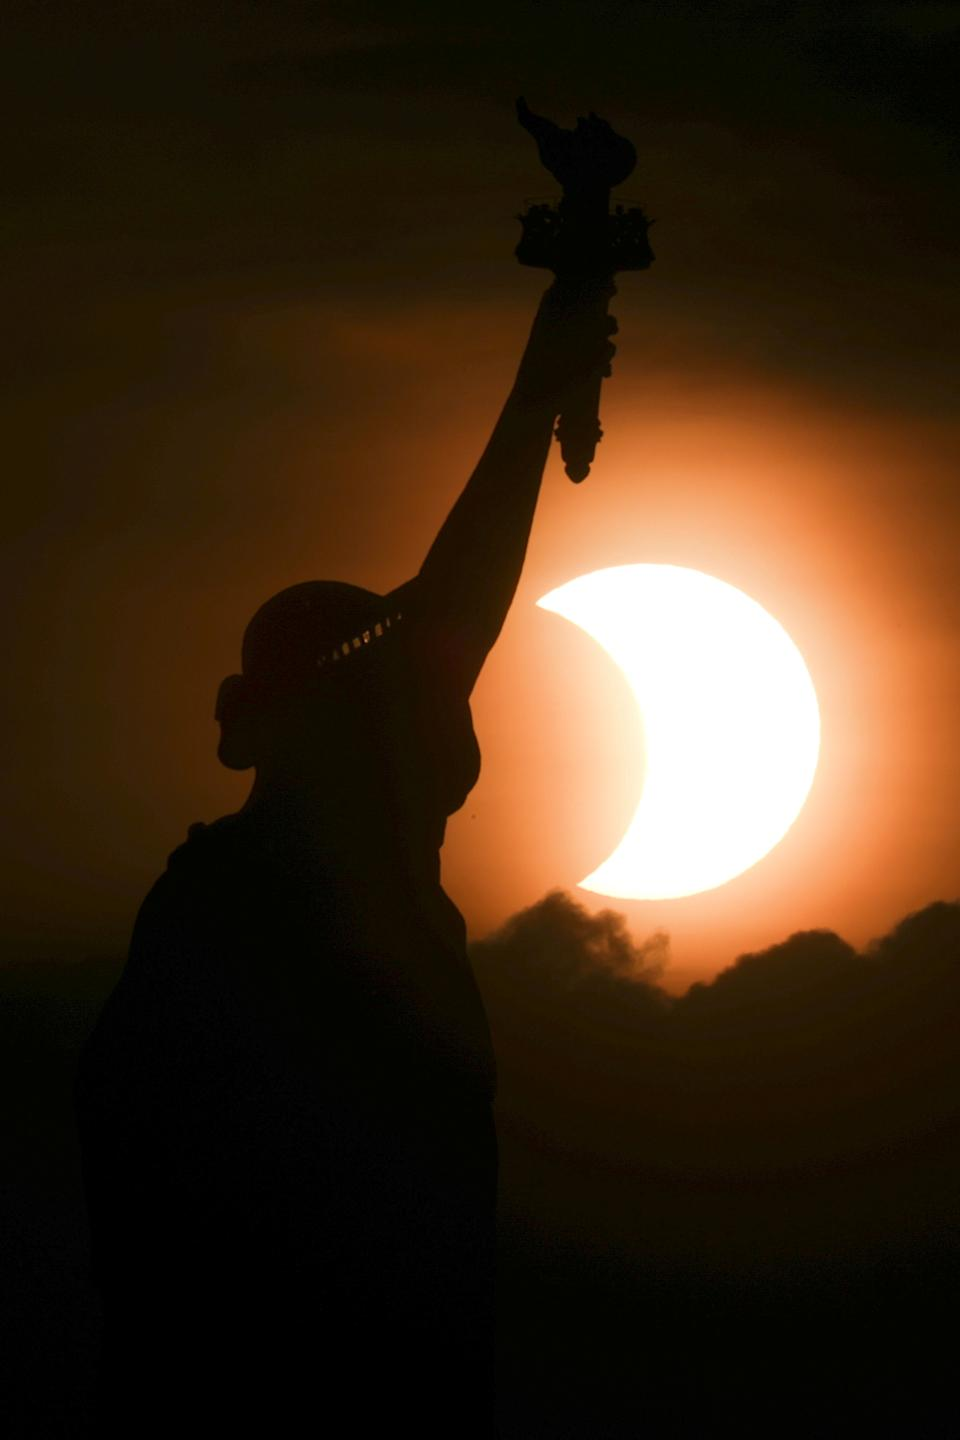 The partially eclipsed sun rises behind the Statue of Liberty in New York City, New York, U.S., early on June 10, 2021. REUTERS/Bjoern Kils/New York Media Boat     TPX IMAGES OF THE DAY